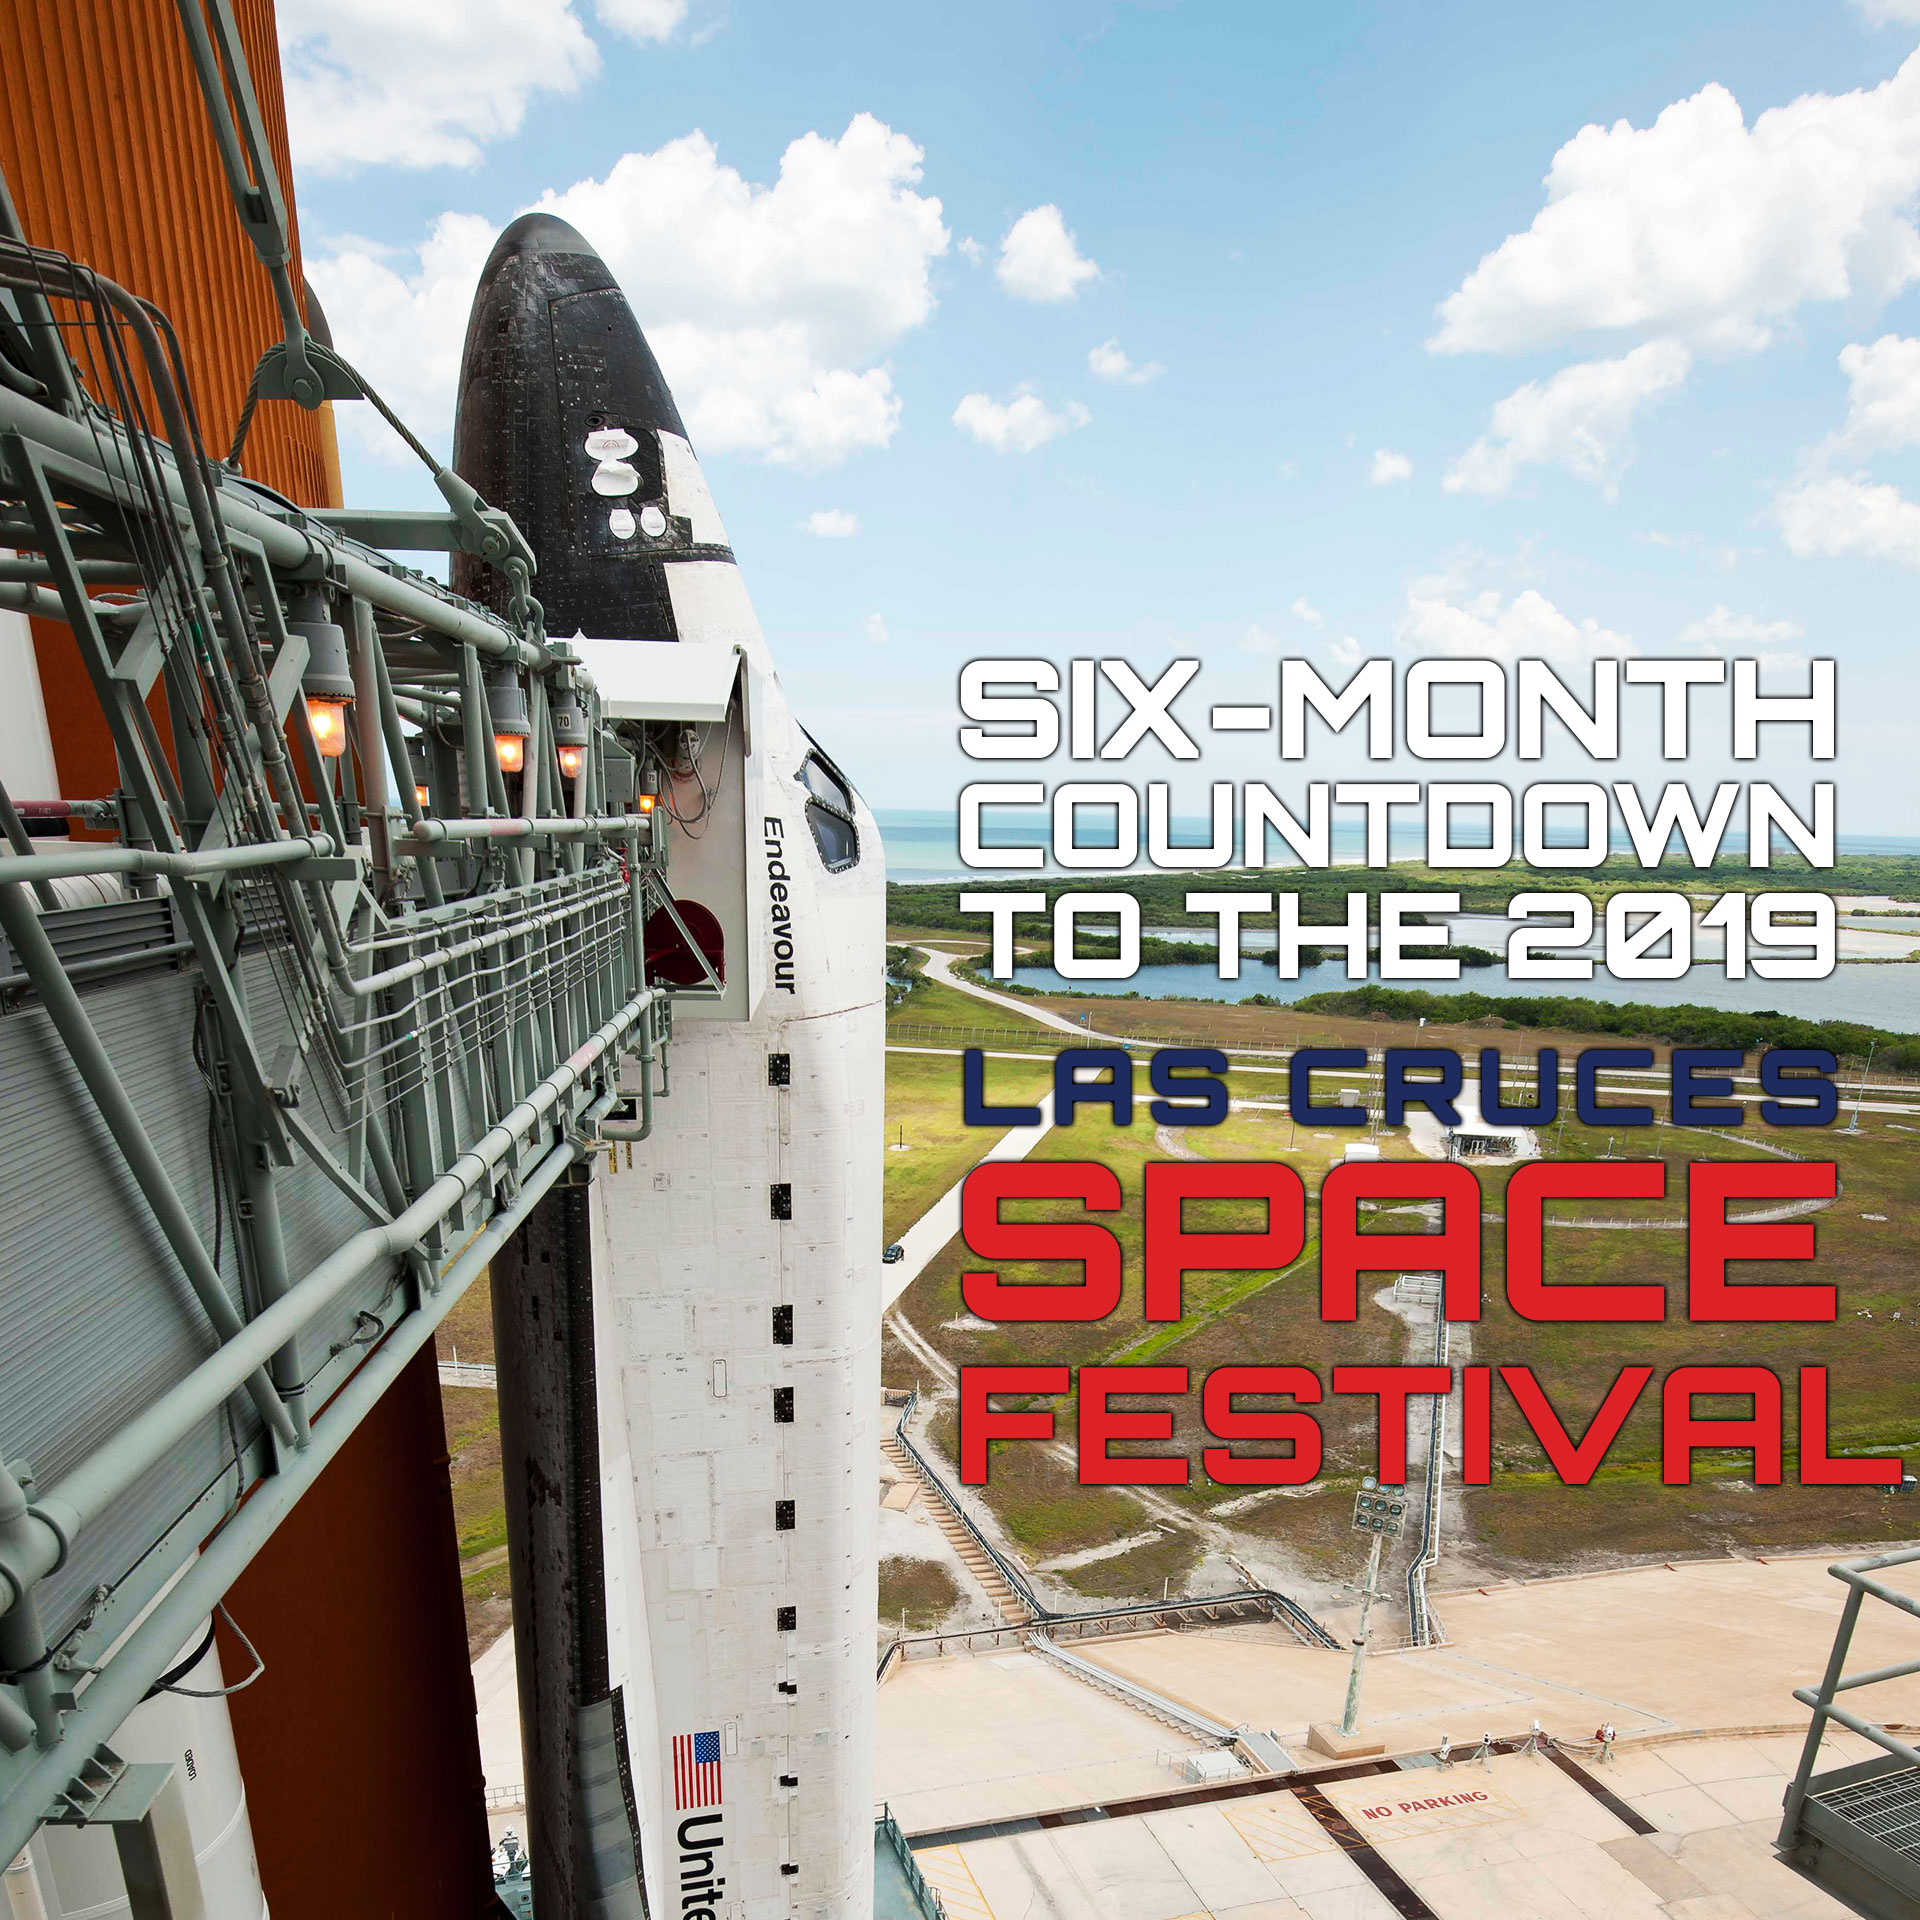 Six-Month Countdown Until the 2019 Las Cruces Space Festival